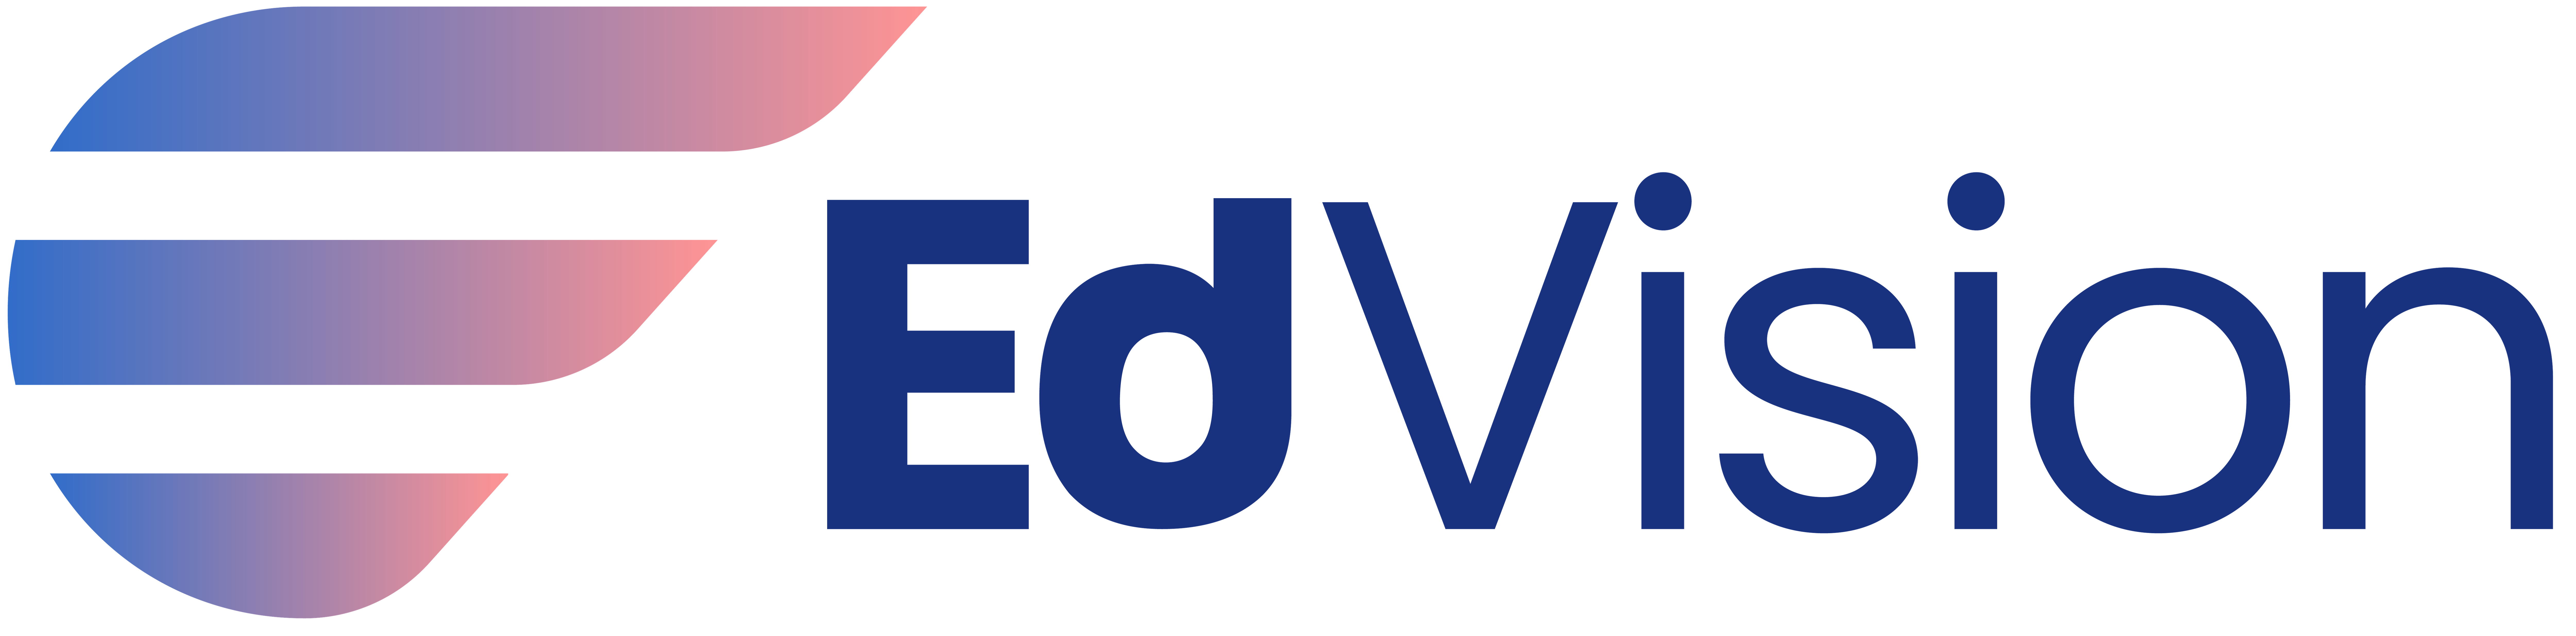 EdVision